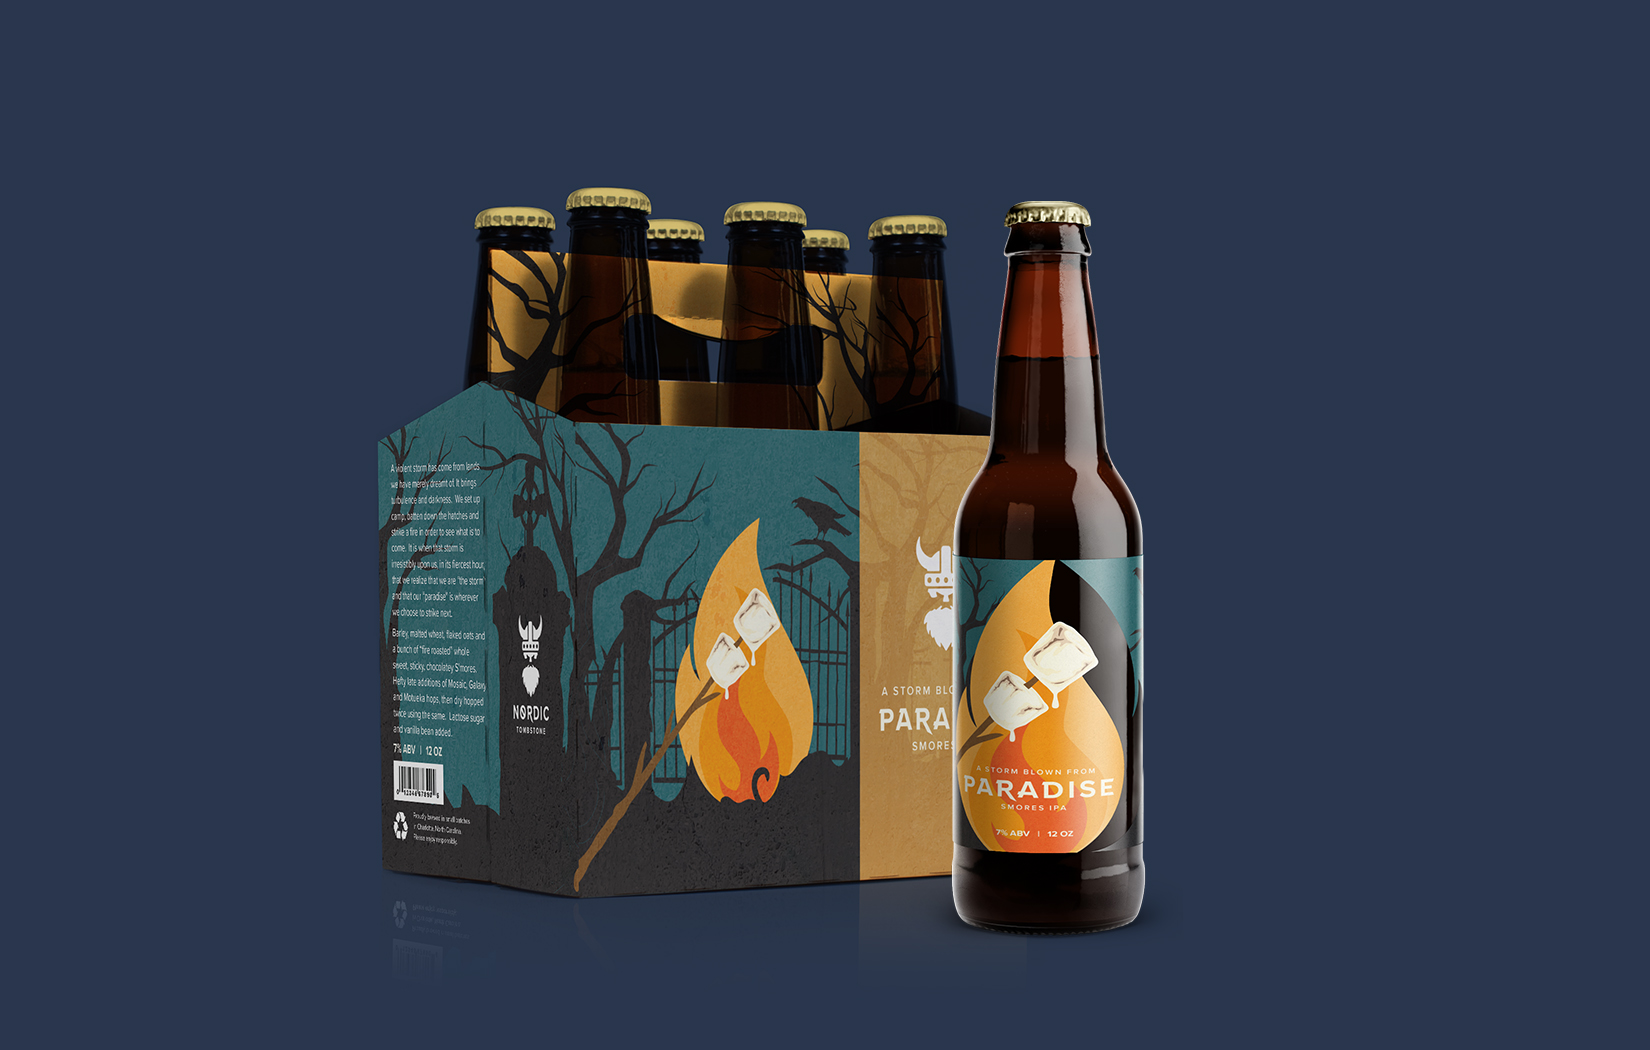 NORDICTOMBSTONE - Winner of this year's AIGA Beer + Branding, the Nordic Tombstone branding and packaging is one of my most recent success stories.